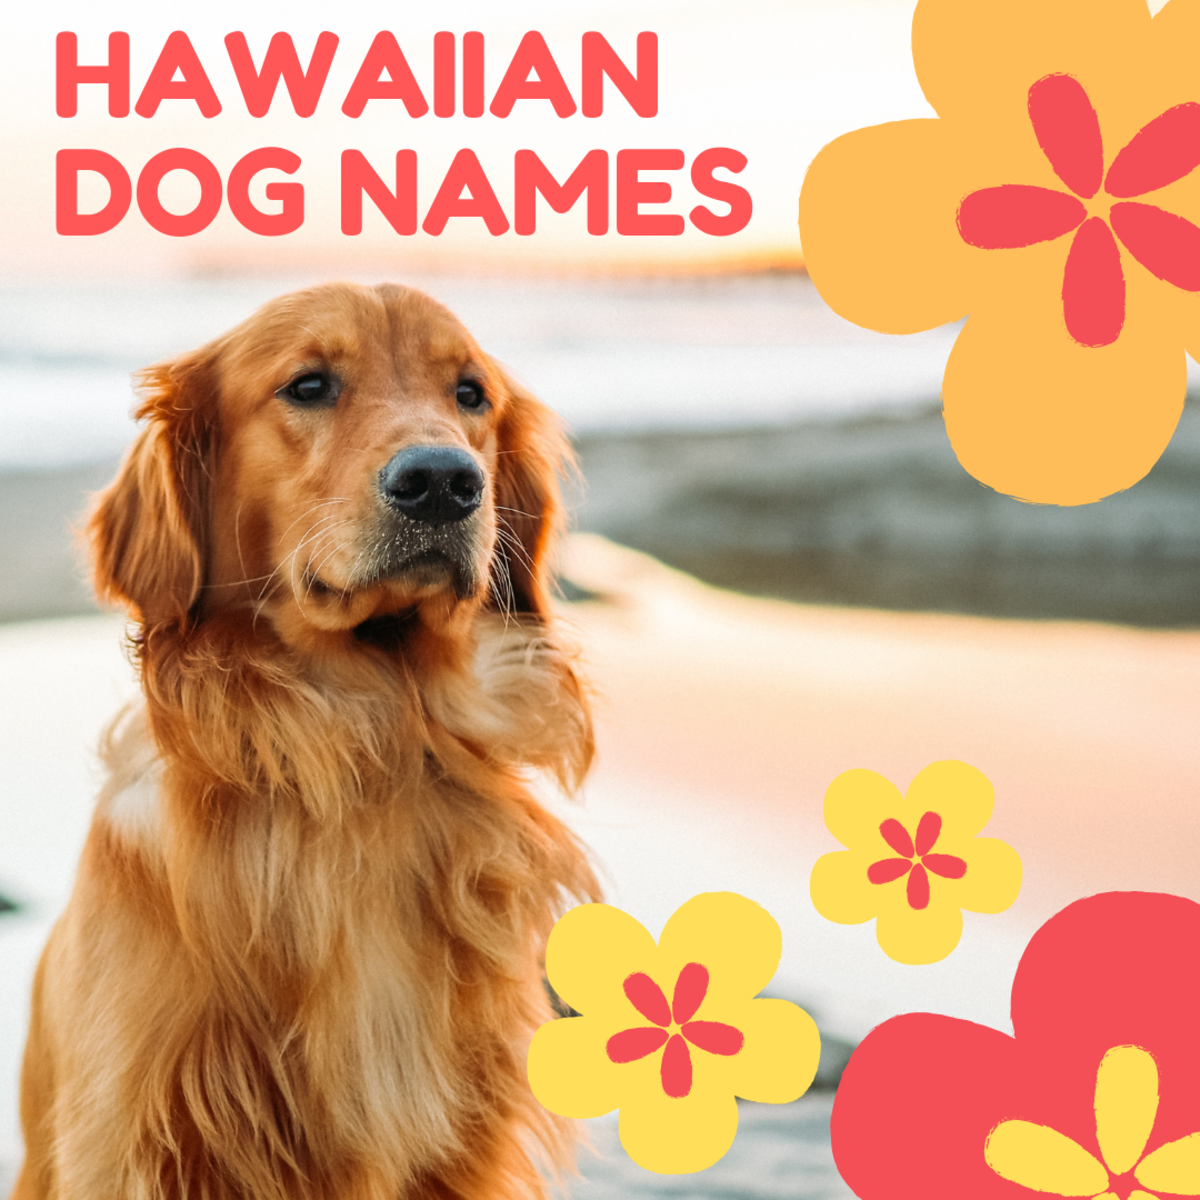 The best Hawaiian dog names.